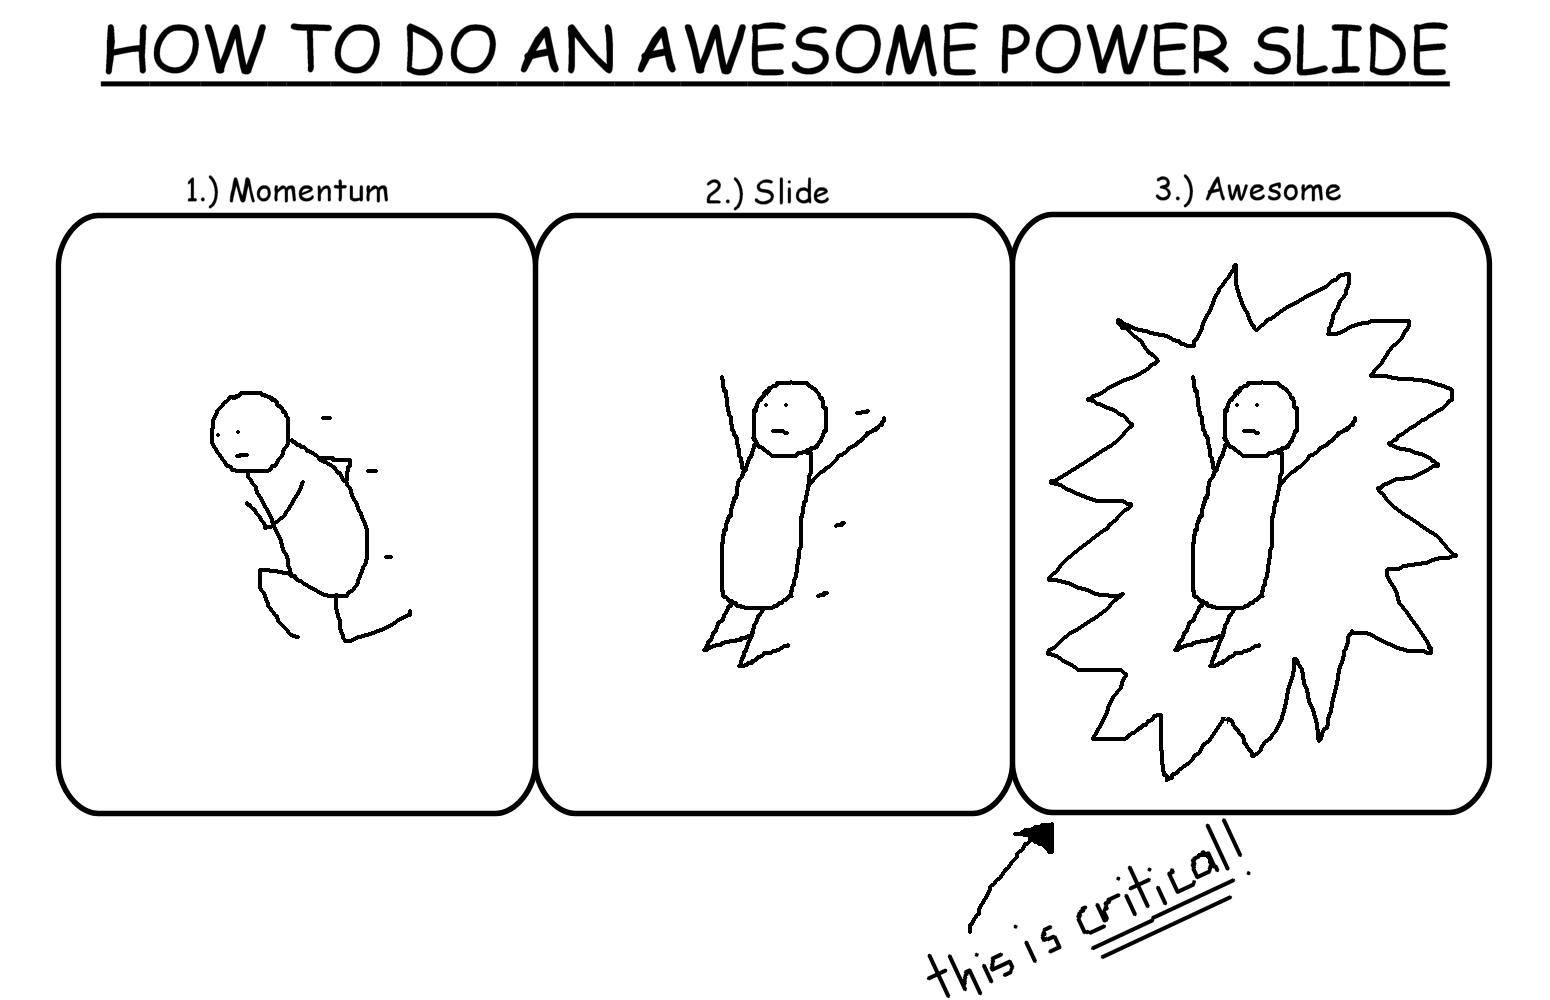 how to power slide by lordw007 on deviantart